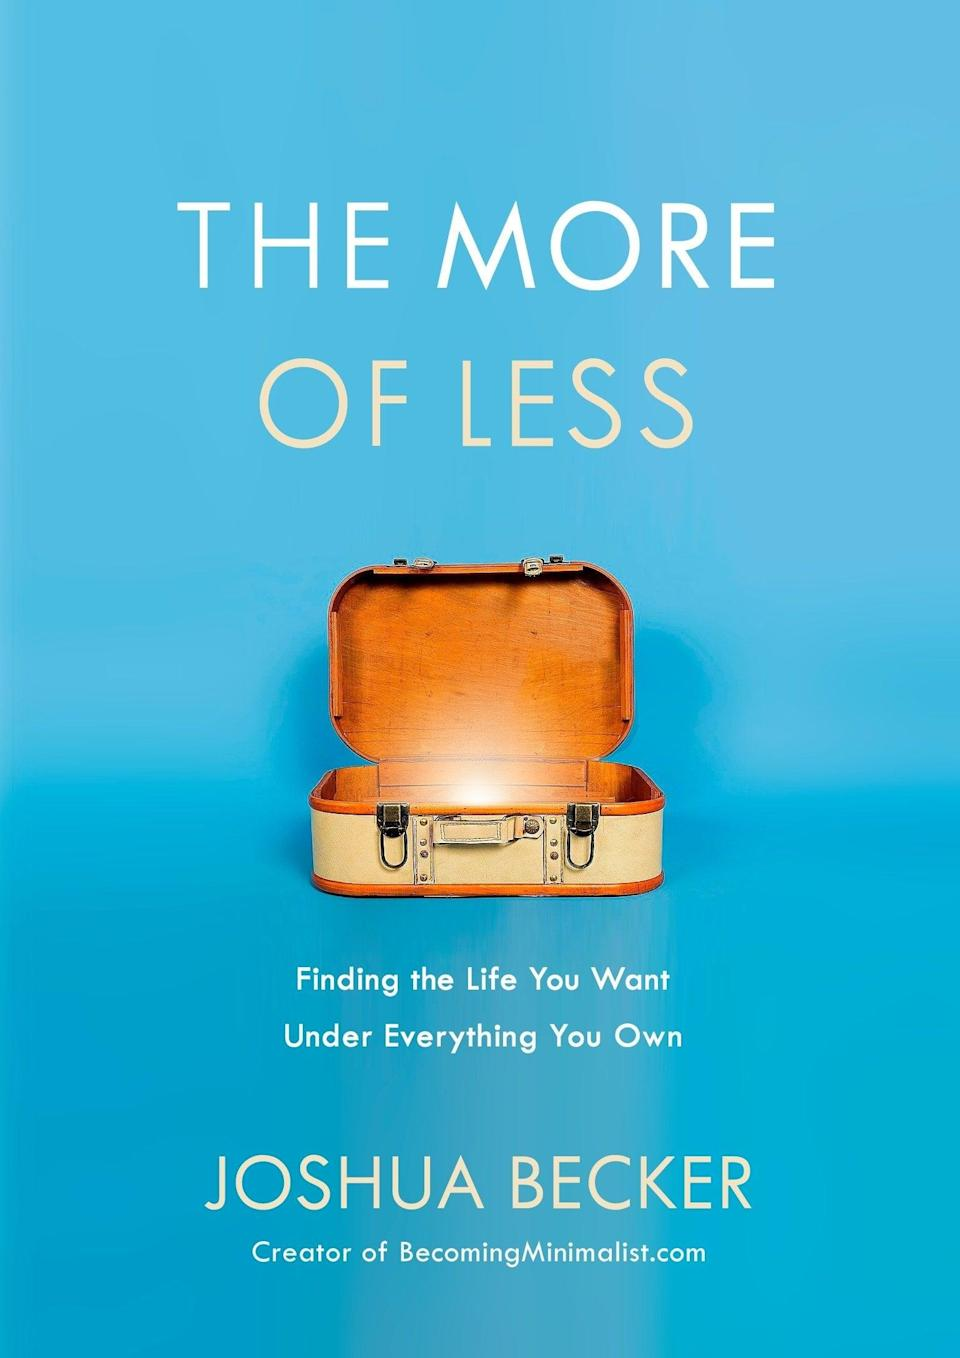 <p>Like many of us, Joshua Becker came to the realization that it was time for a change. Inside Becker's book <b><span>The More of Less: Finding the Life You Want Under Everything You Own</span></b>, he provides a redirection towards rethinking the concept of organization and what it means to invite the idea of simplicity with owning less and gaining more. </p>